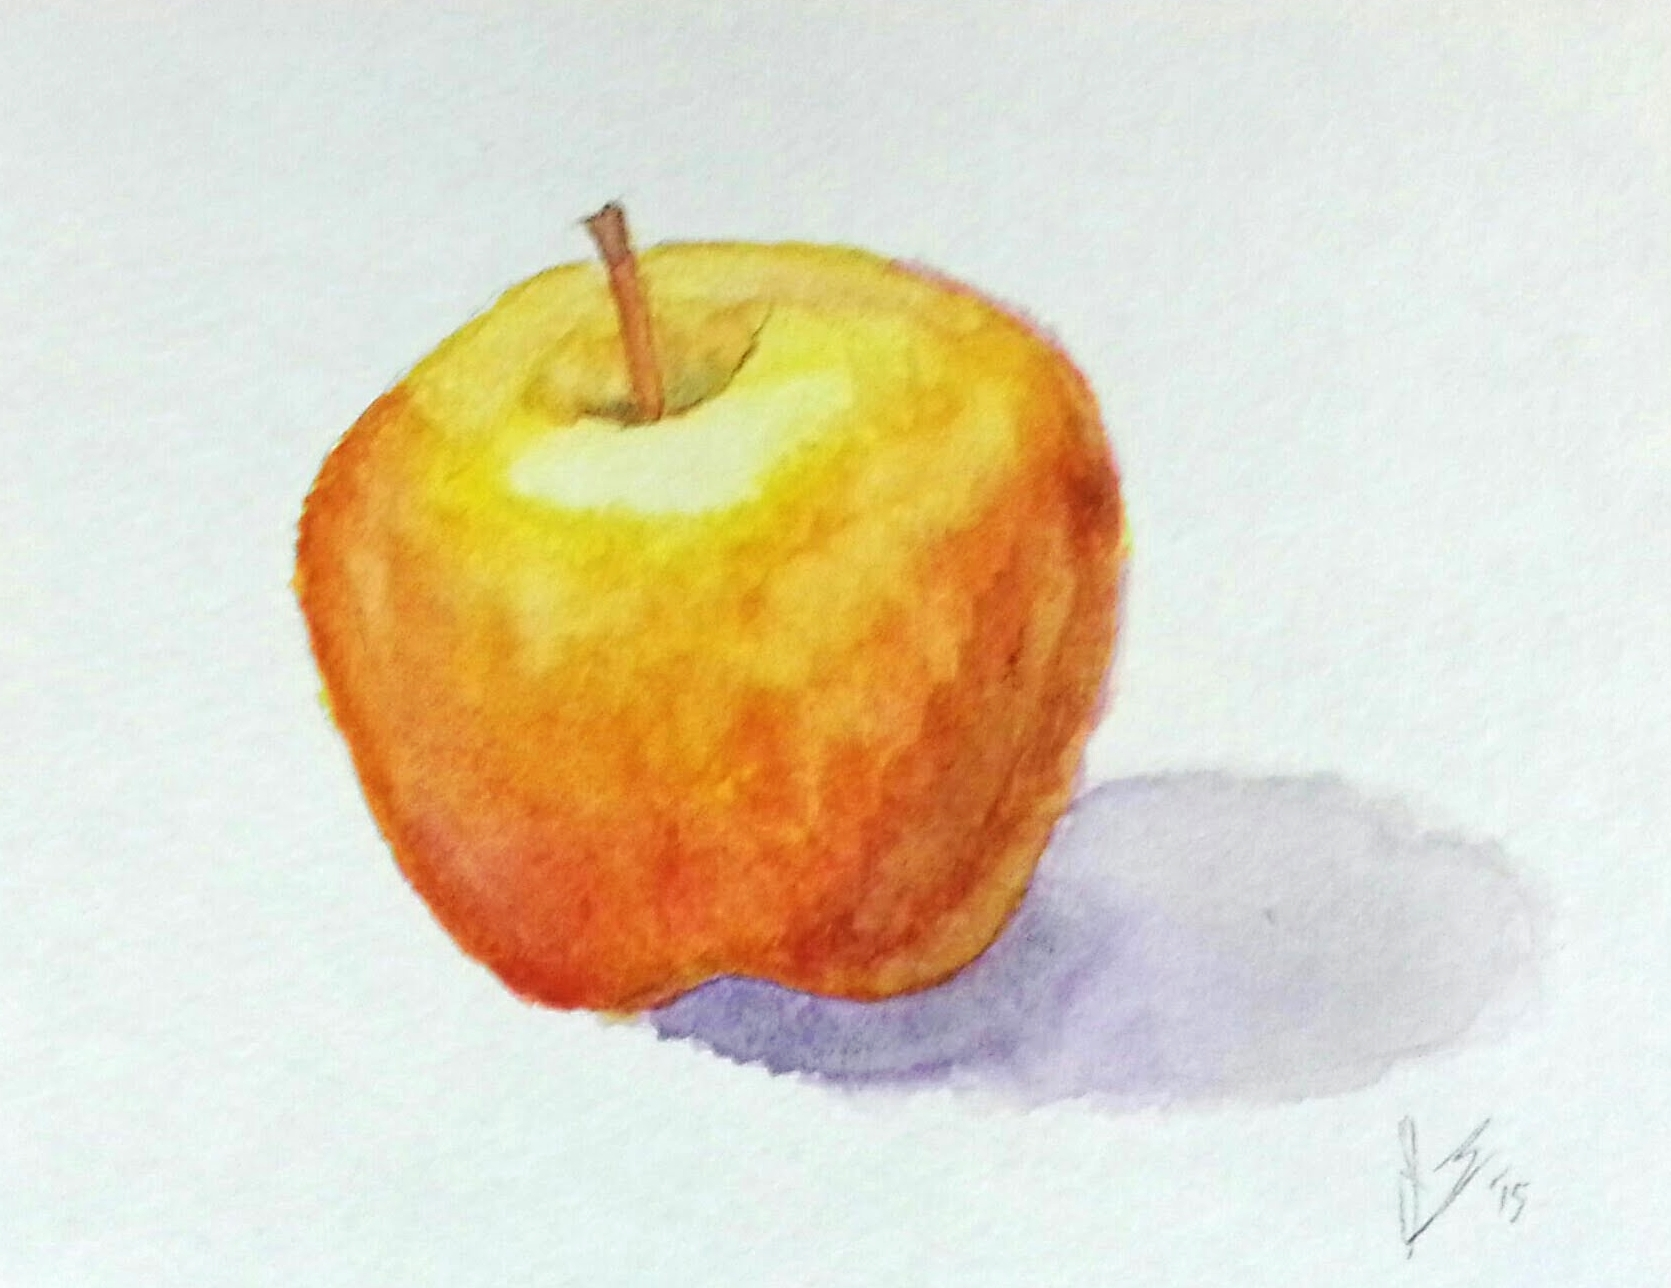 January, 2015  Still Life of an Apple and Bowser from Super Mario World